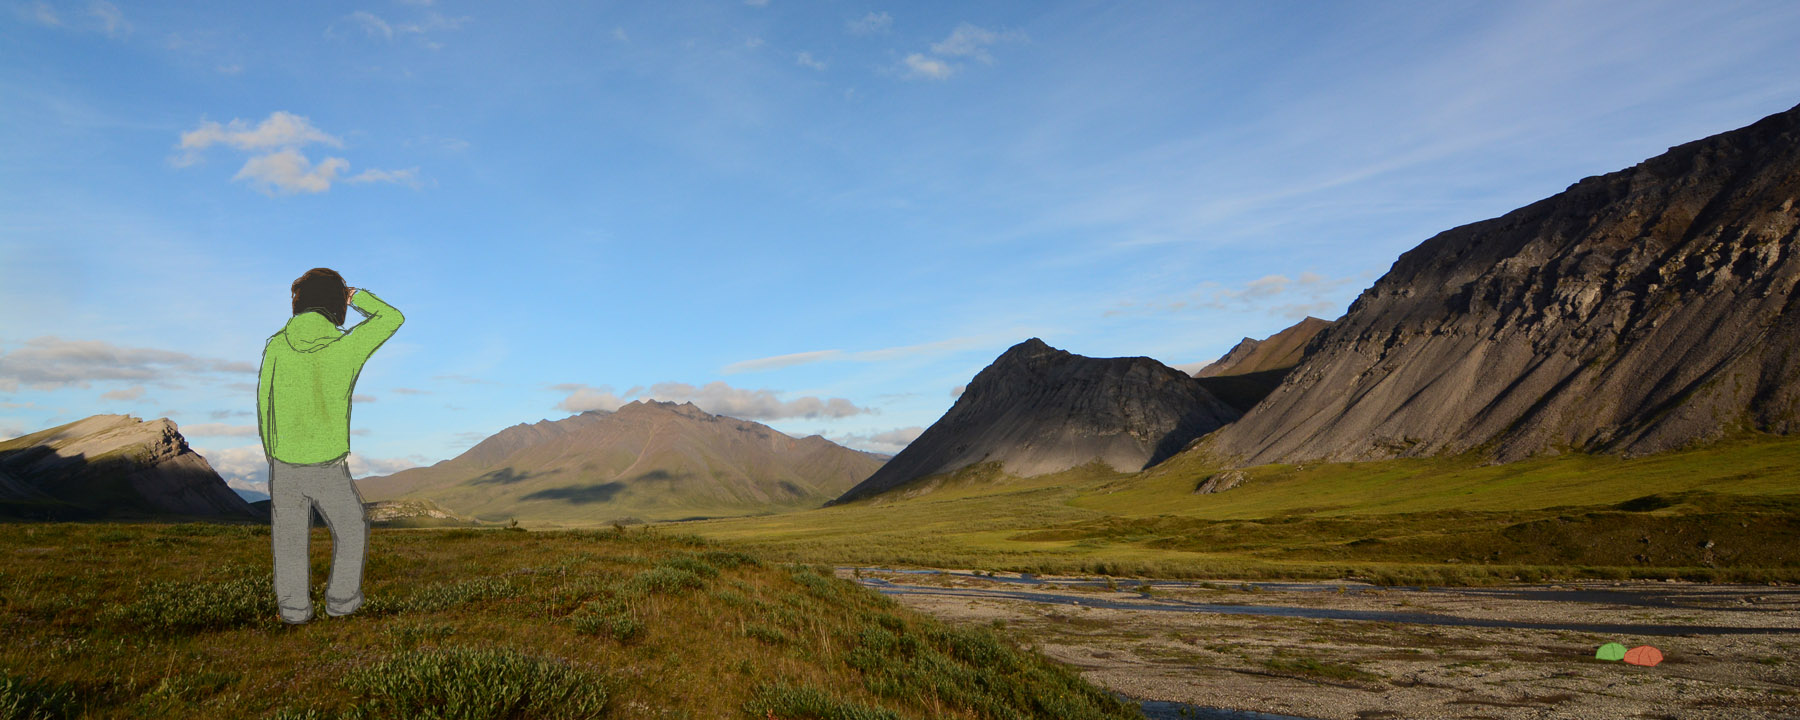 Camped on the floor of the Anaktuvuk River Valley, surrounded by sunlit mountains